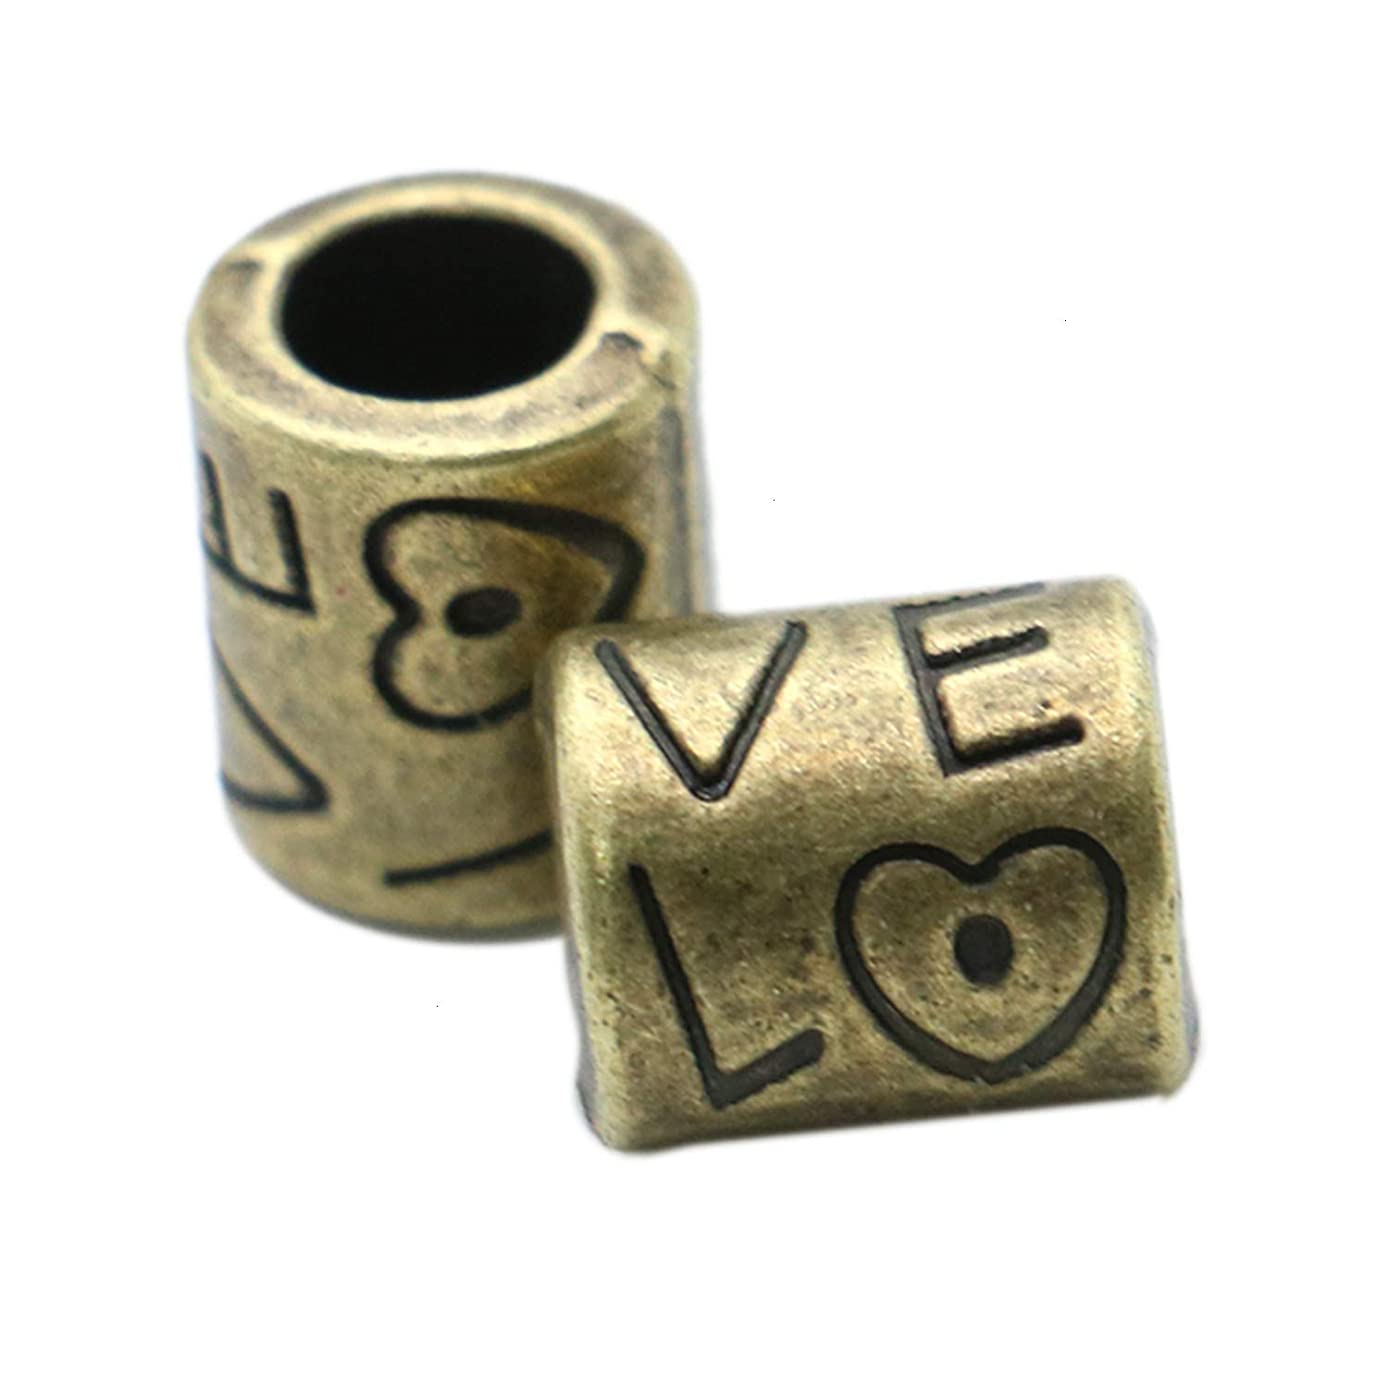 Monrocco 60Pcs Antique Bronze Love Lagre Spacer Beads Vintage Alloy Beads for Jewelry Making and Crafting xfqvjmwumx